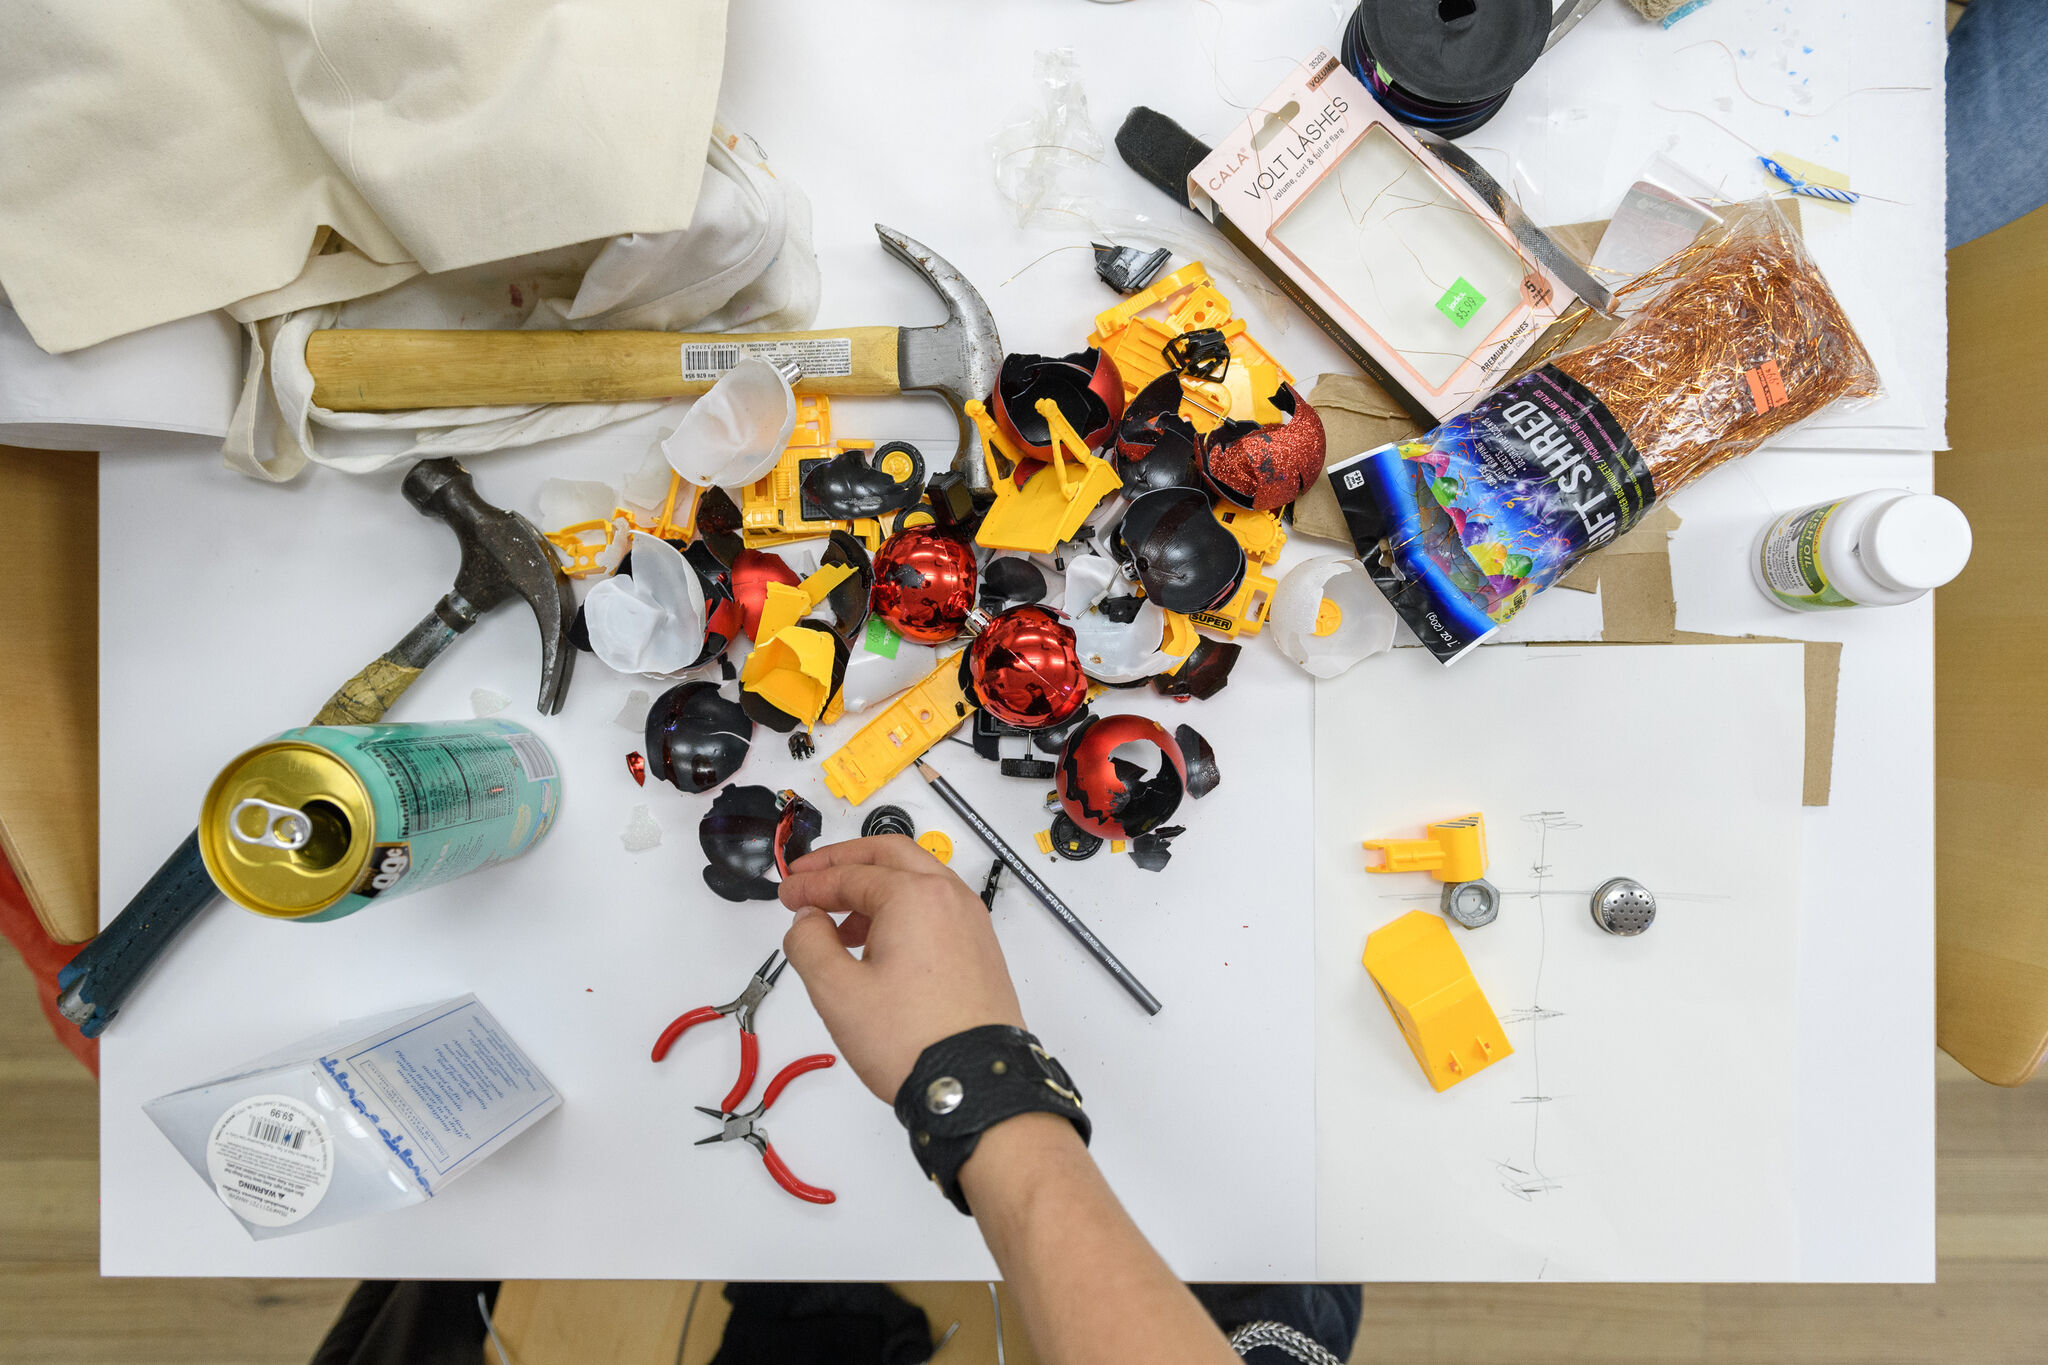 Broken pieces of what appears to be plastic and metal and ornaments rest on a white table next to hammers, glue, and pliers. A hand with a black bracelet is reaching toward some of these materials.